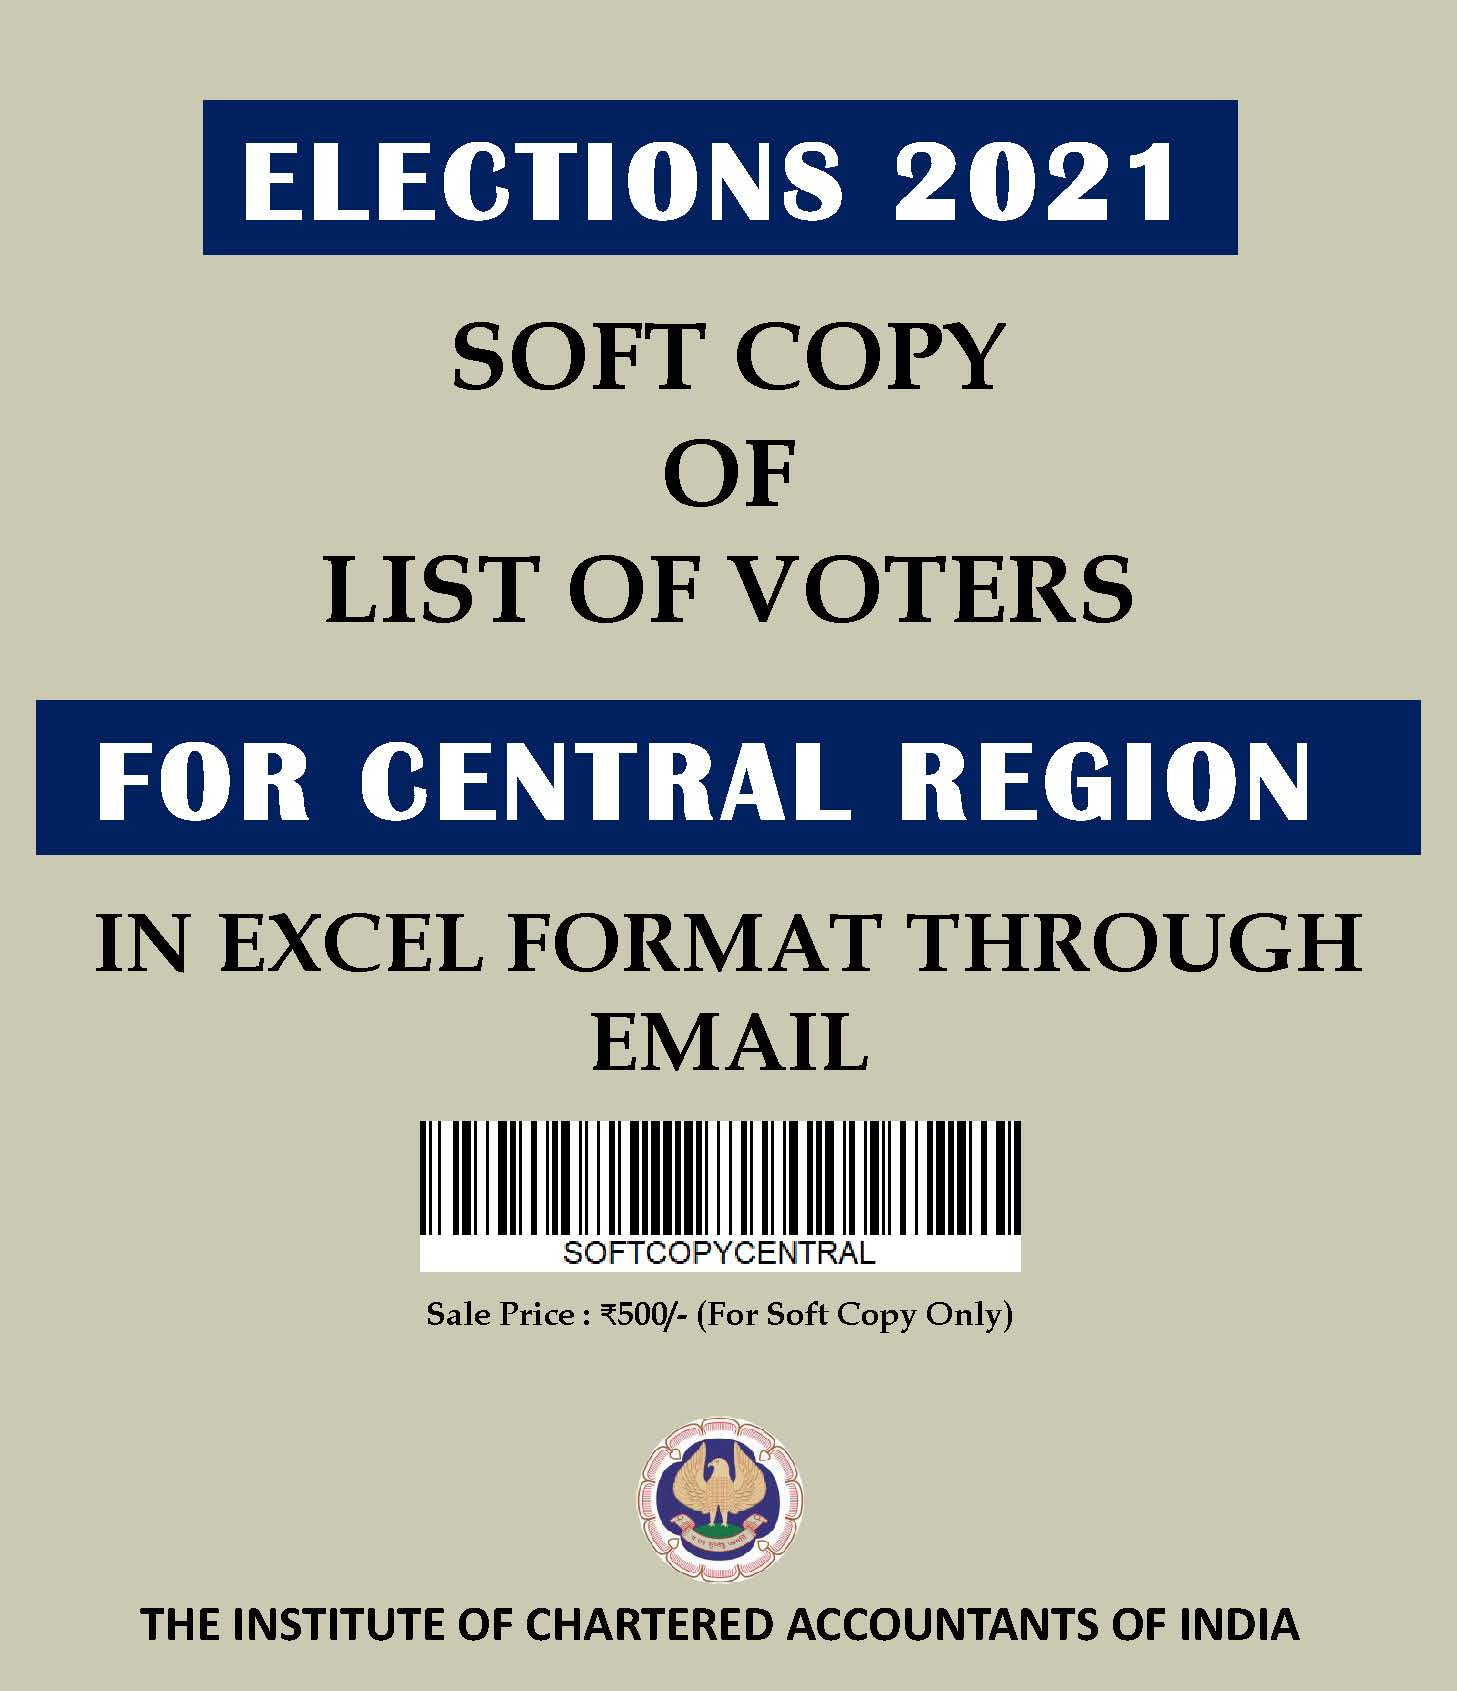 SOFT COPY: List of Voters for Central Region (Elections 2021) in Excel Format Through E-mail